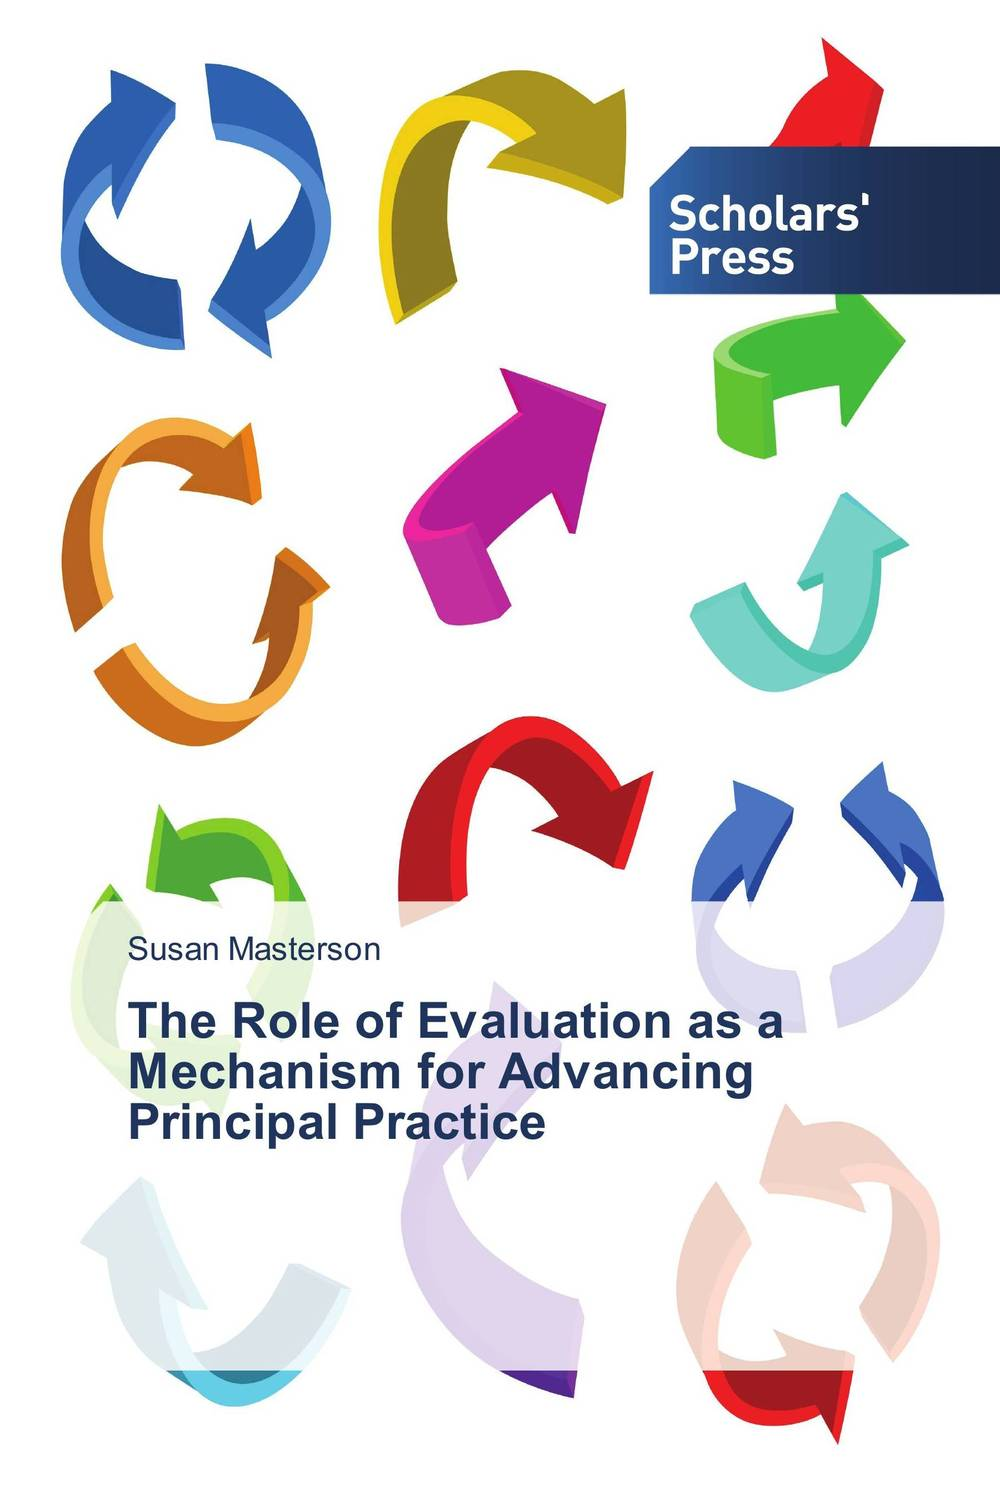 The Role of Evaluation as a Mechanism for Advancing Principal Practice evaluation of the internal control practices